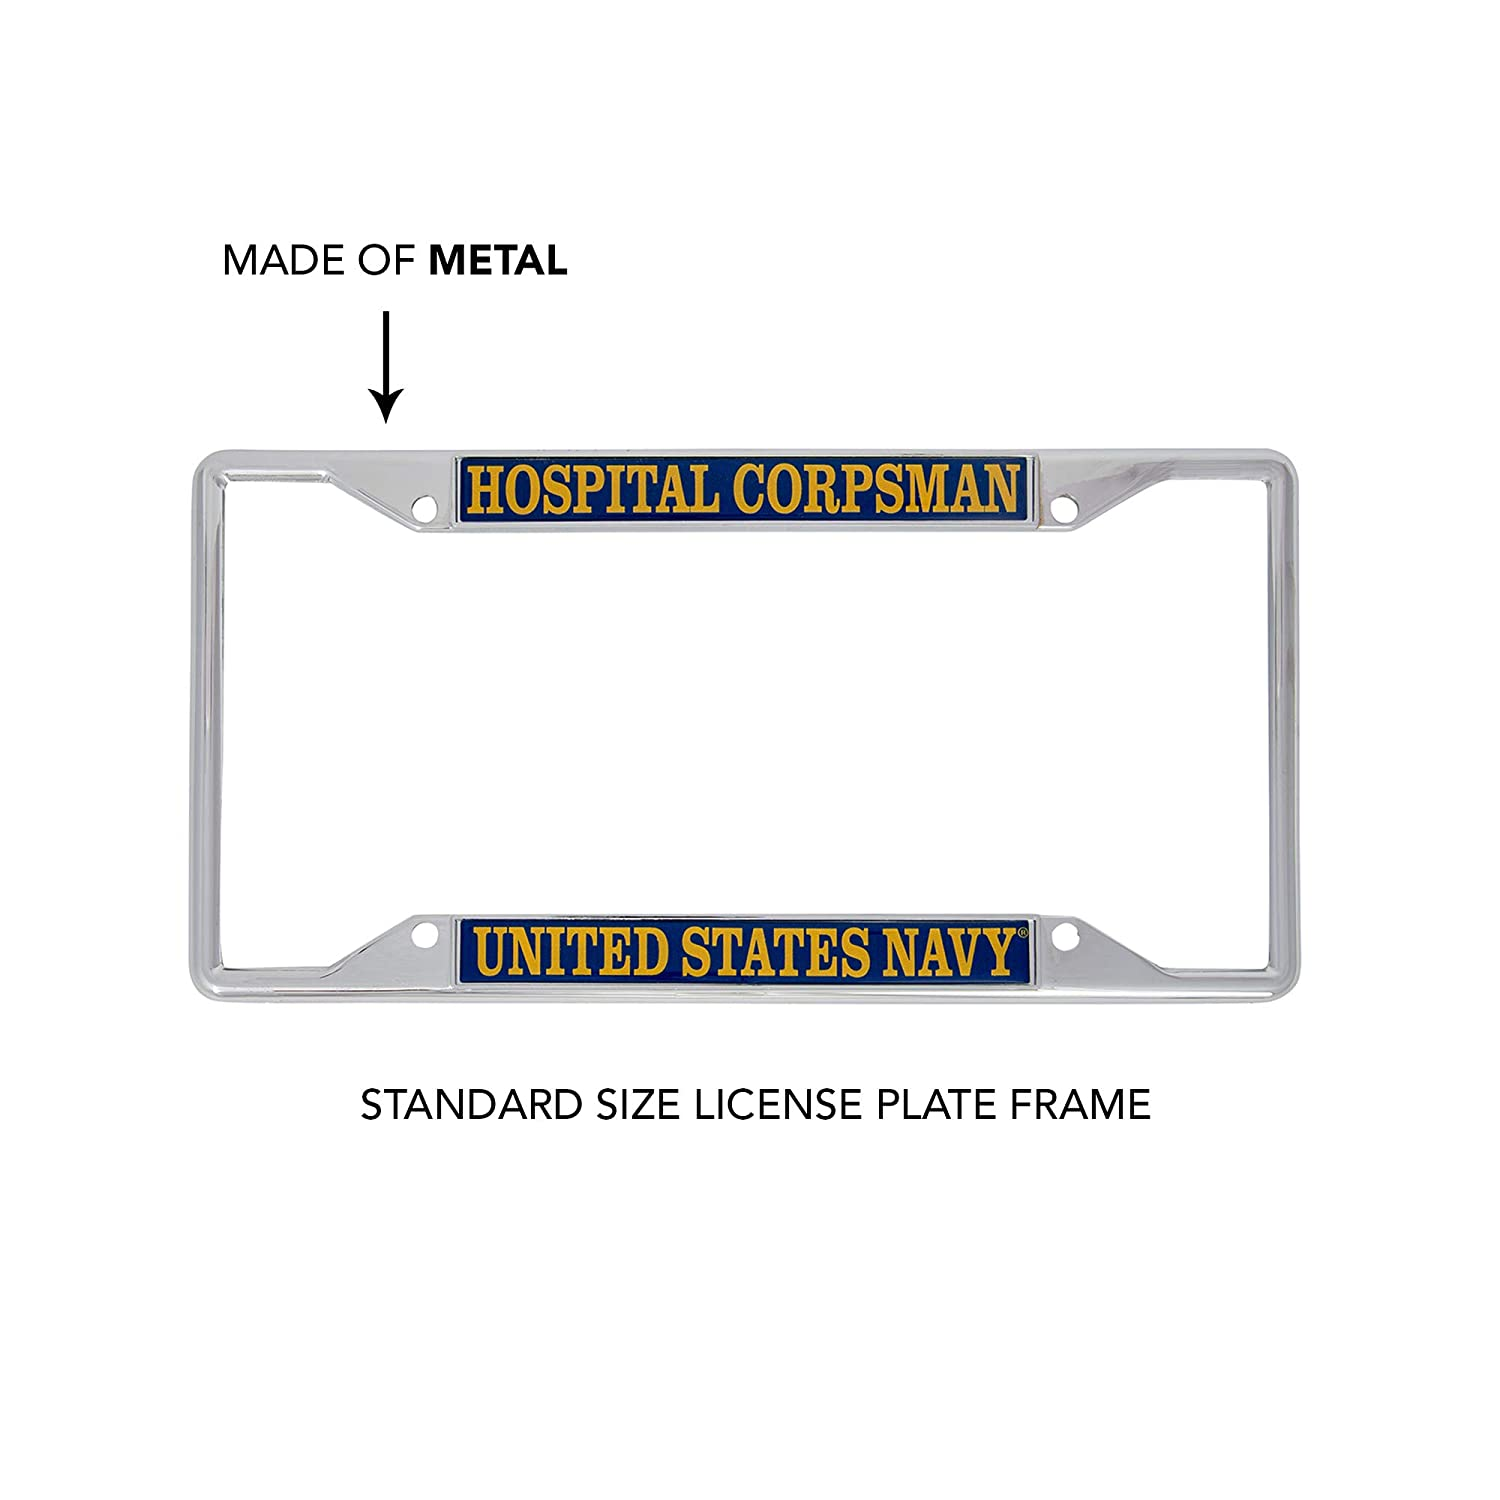 Desert Cactus US Navy Hospital Corpsman Enlisted Rating Insignia License Plate Frame for Front Back of Car Officially Licensed United States